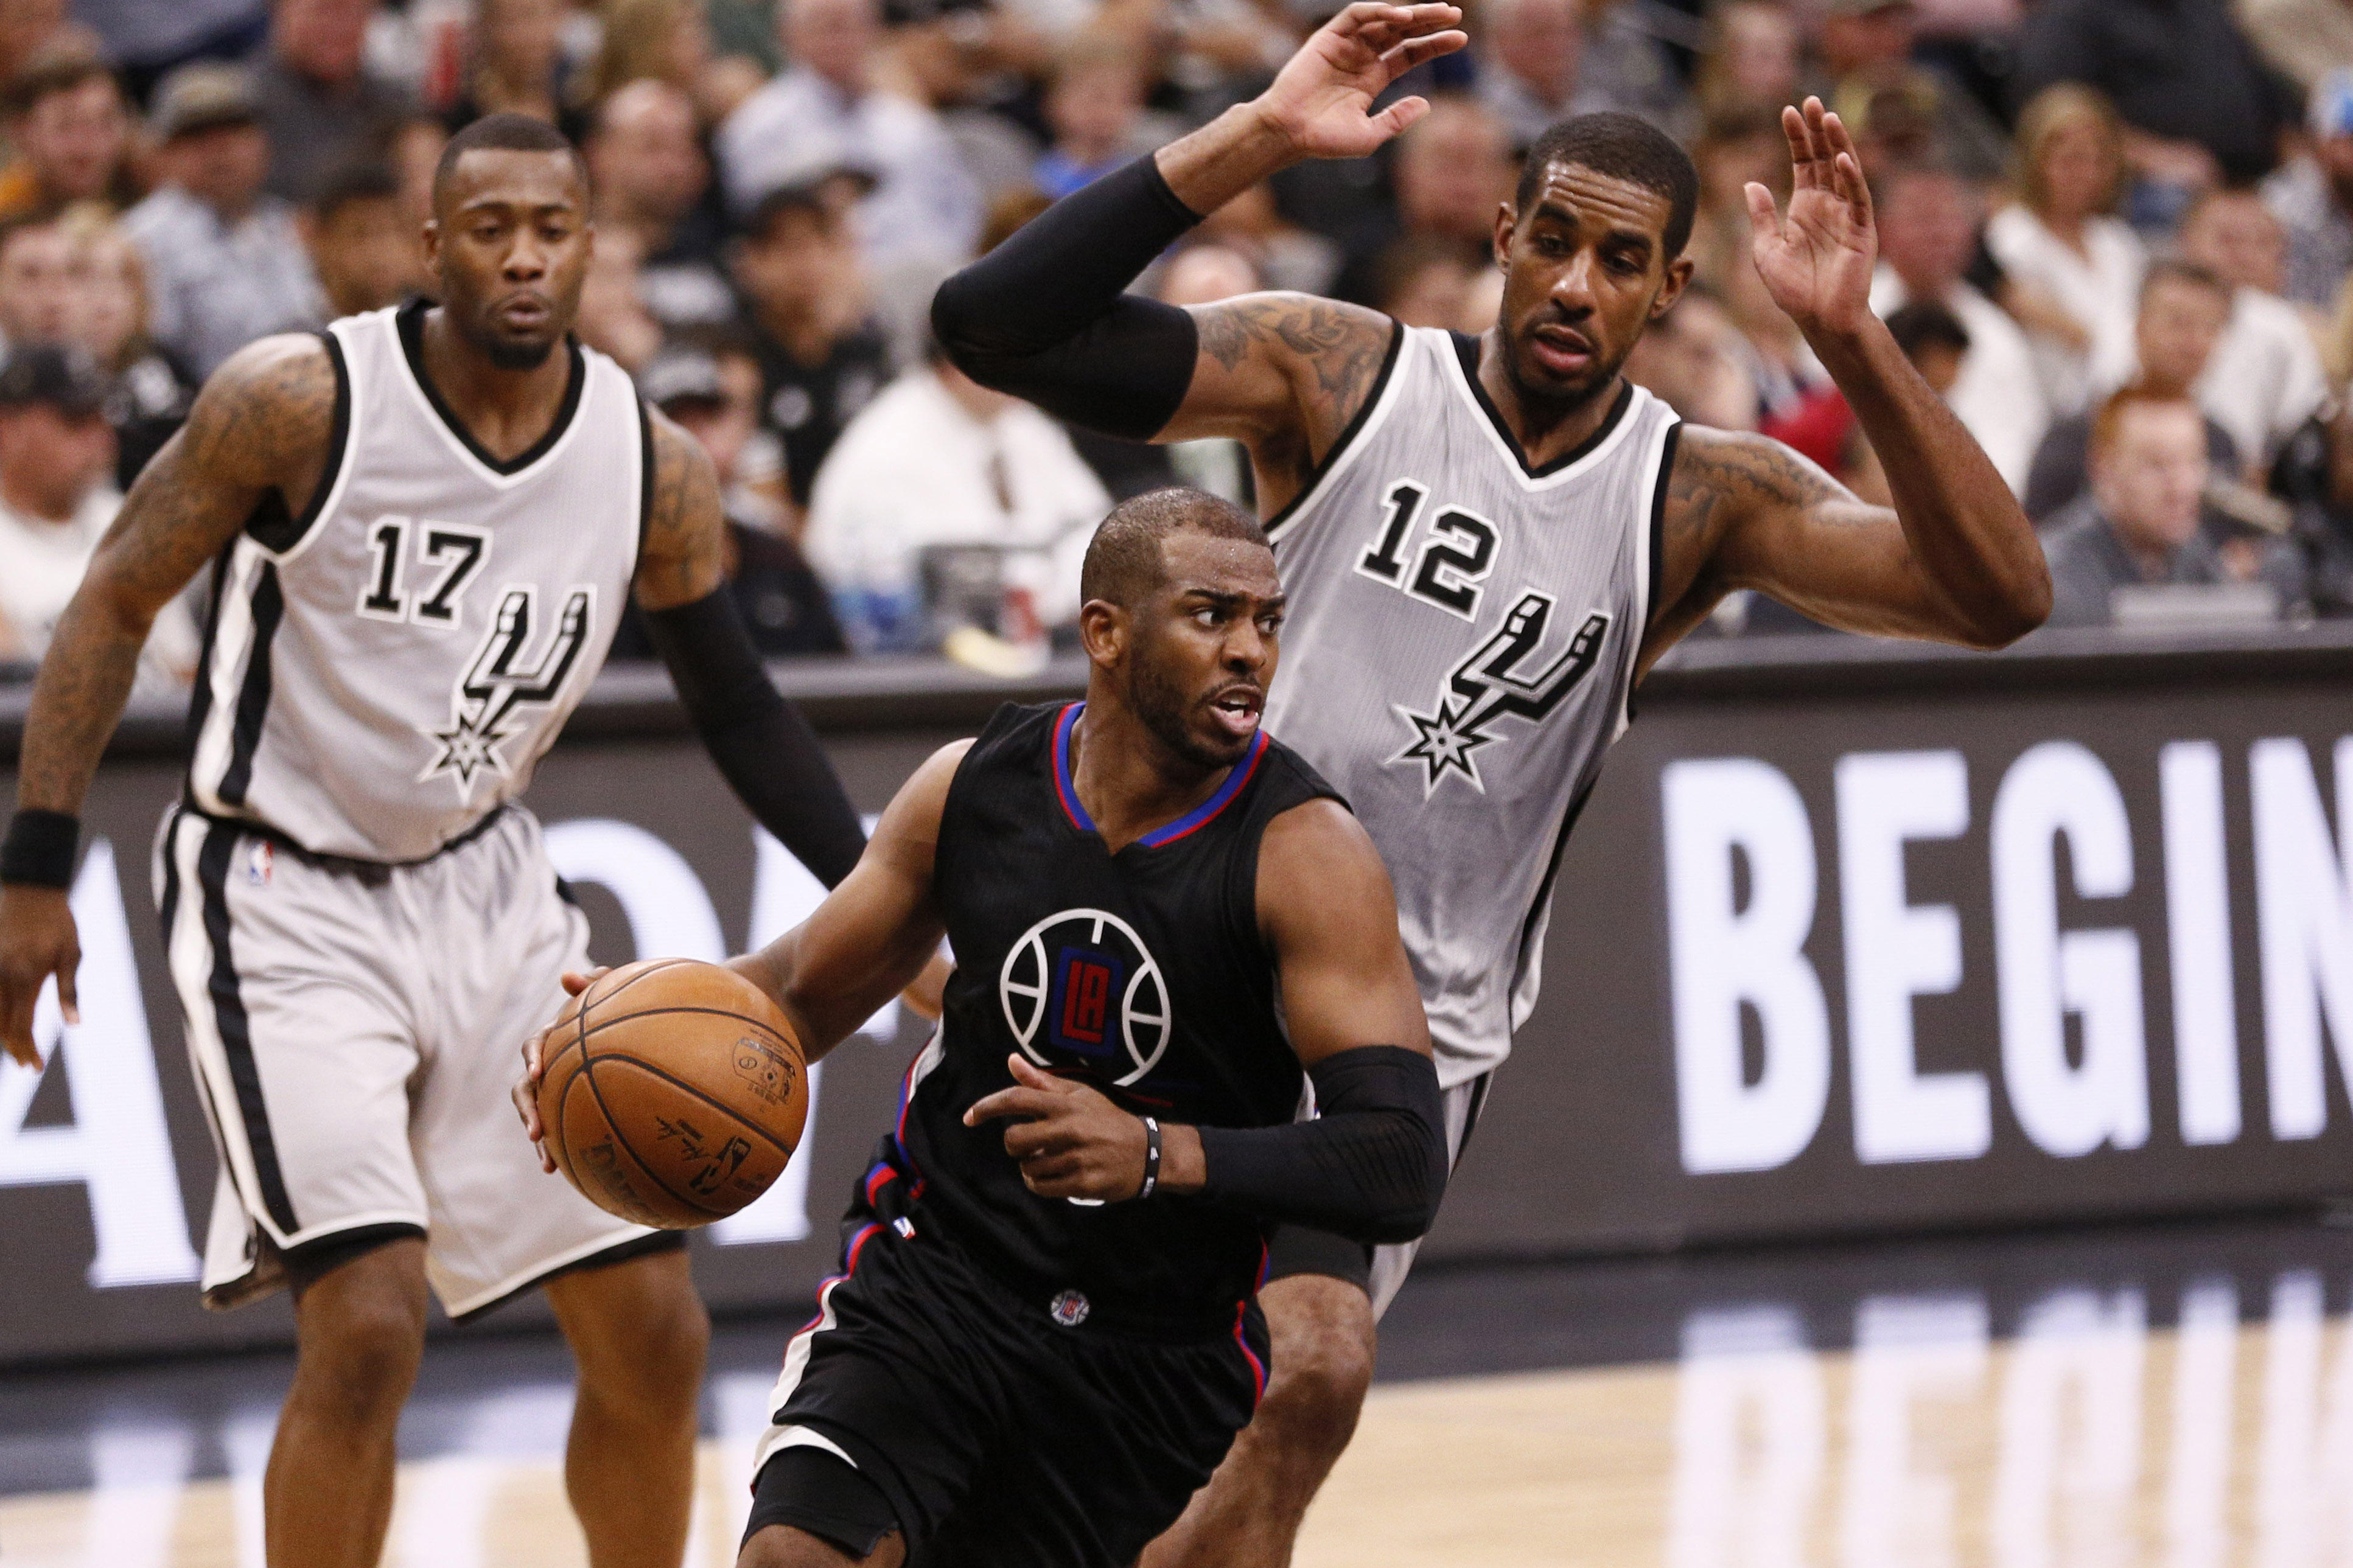 10002058-nba-los-angeles-clippers-at-san-antonio-spurs